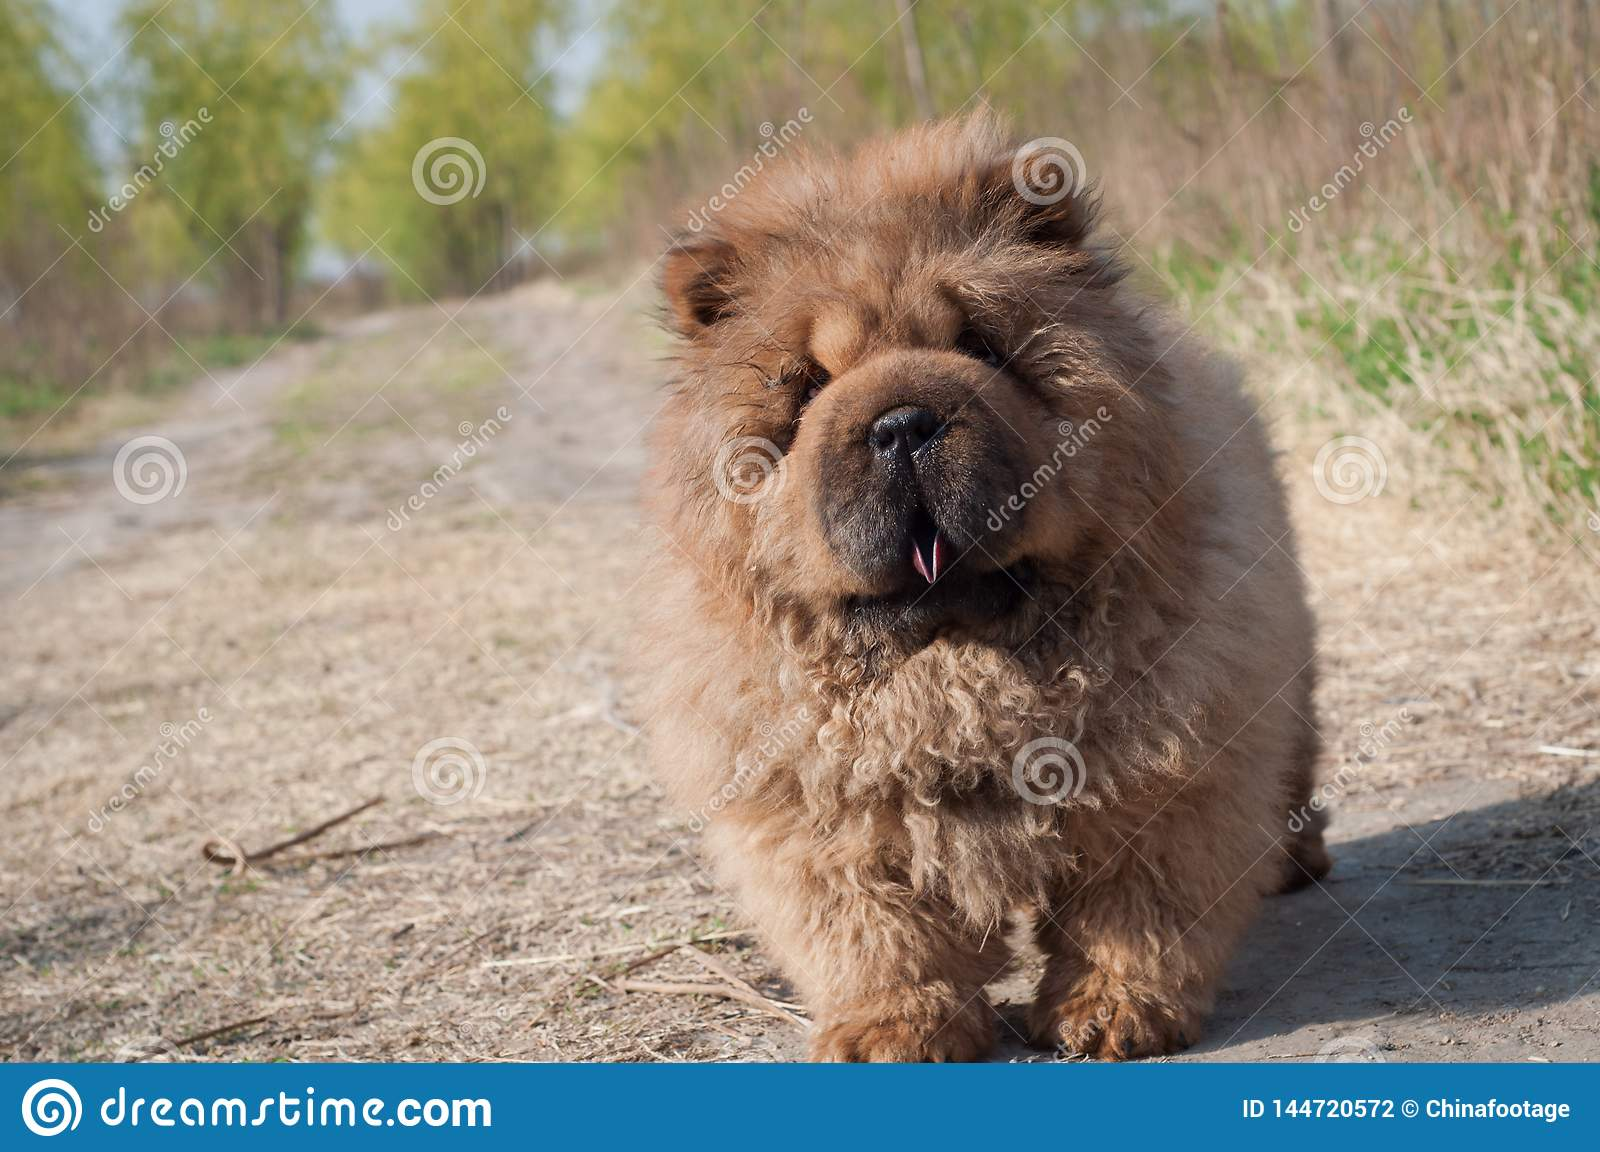 Dog pet chow chow runing on road